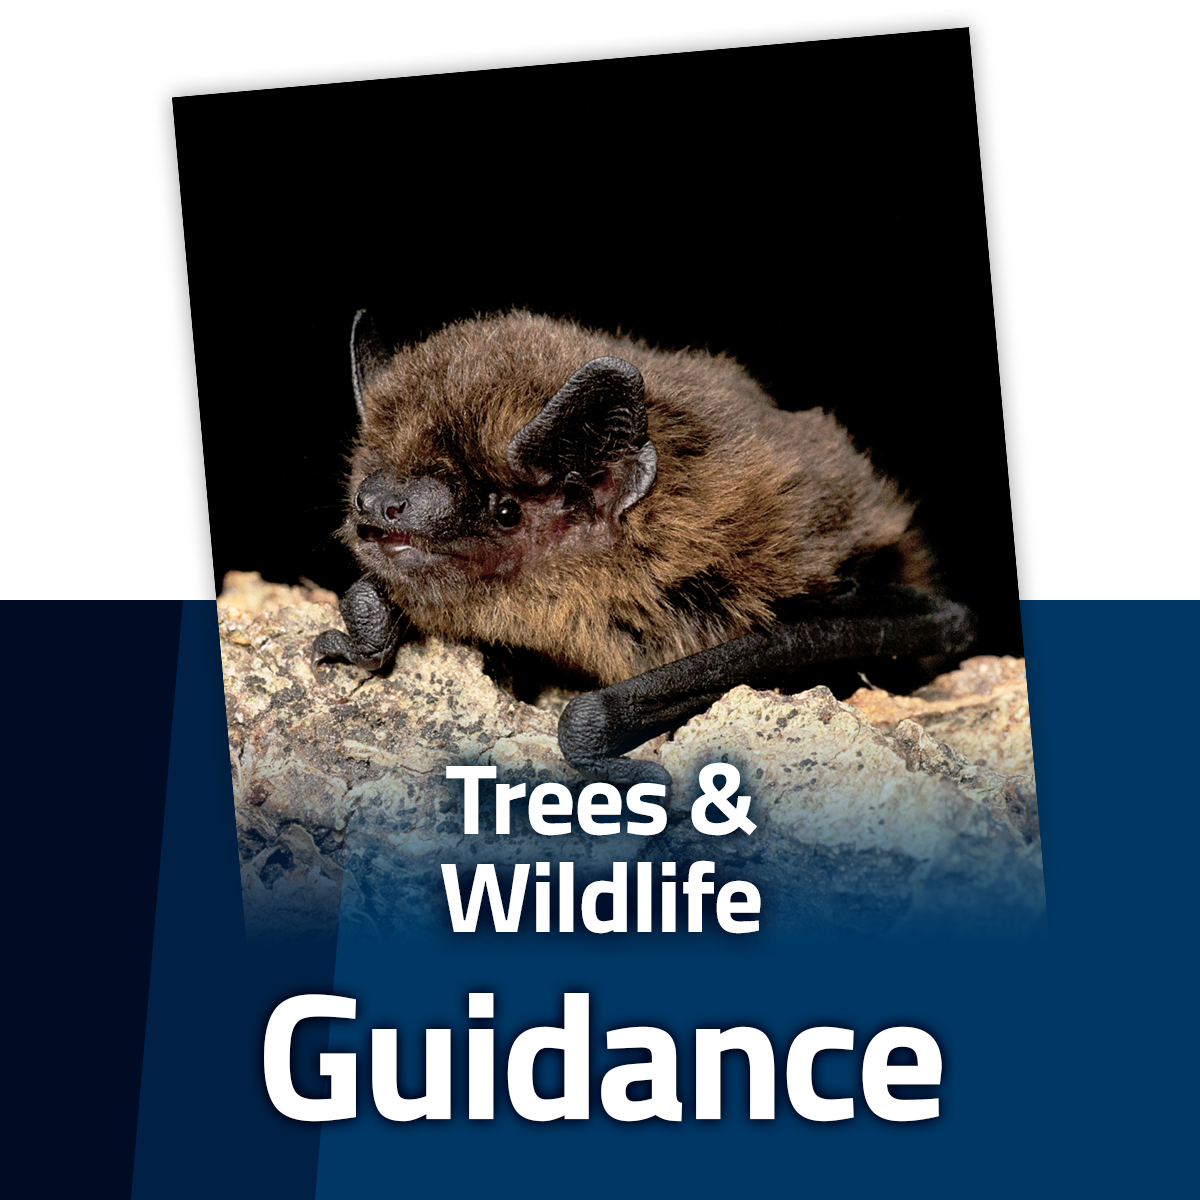 Guide to Trees and Wildlife